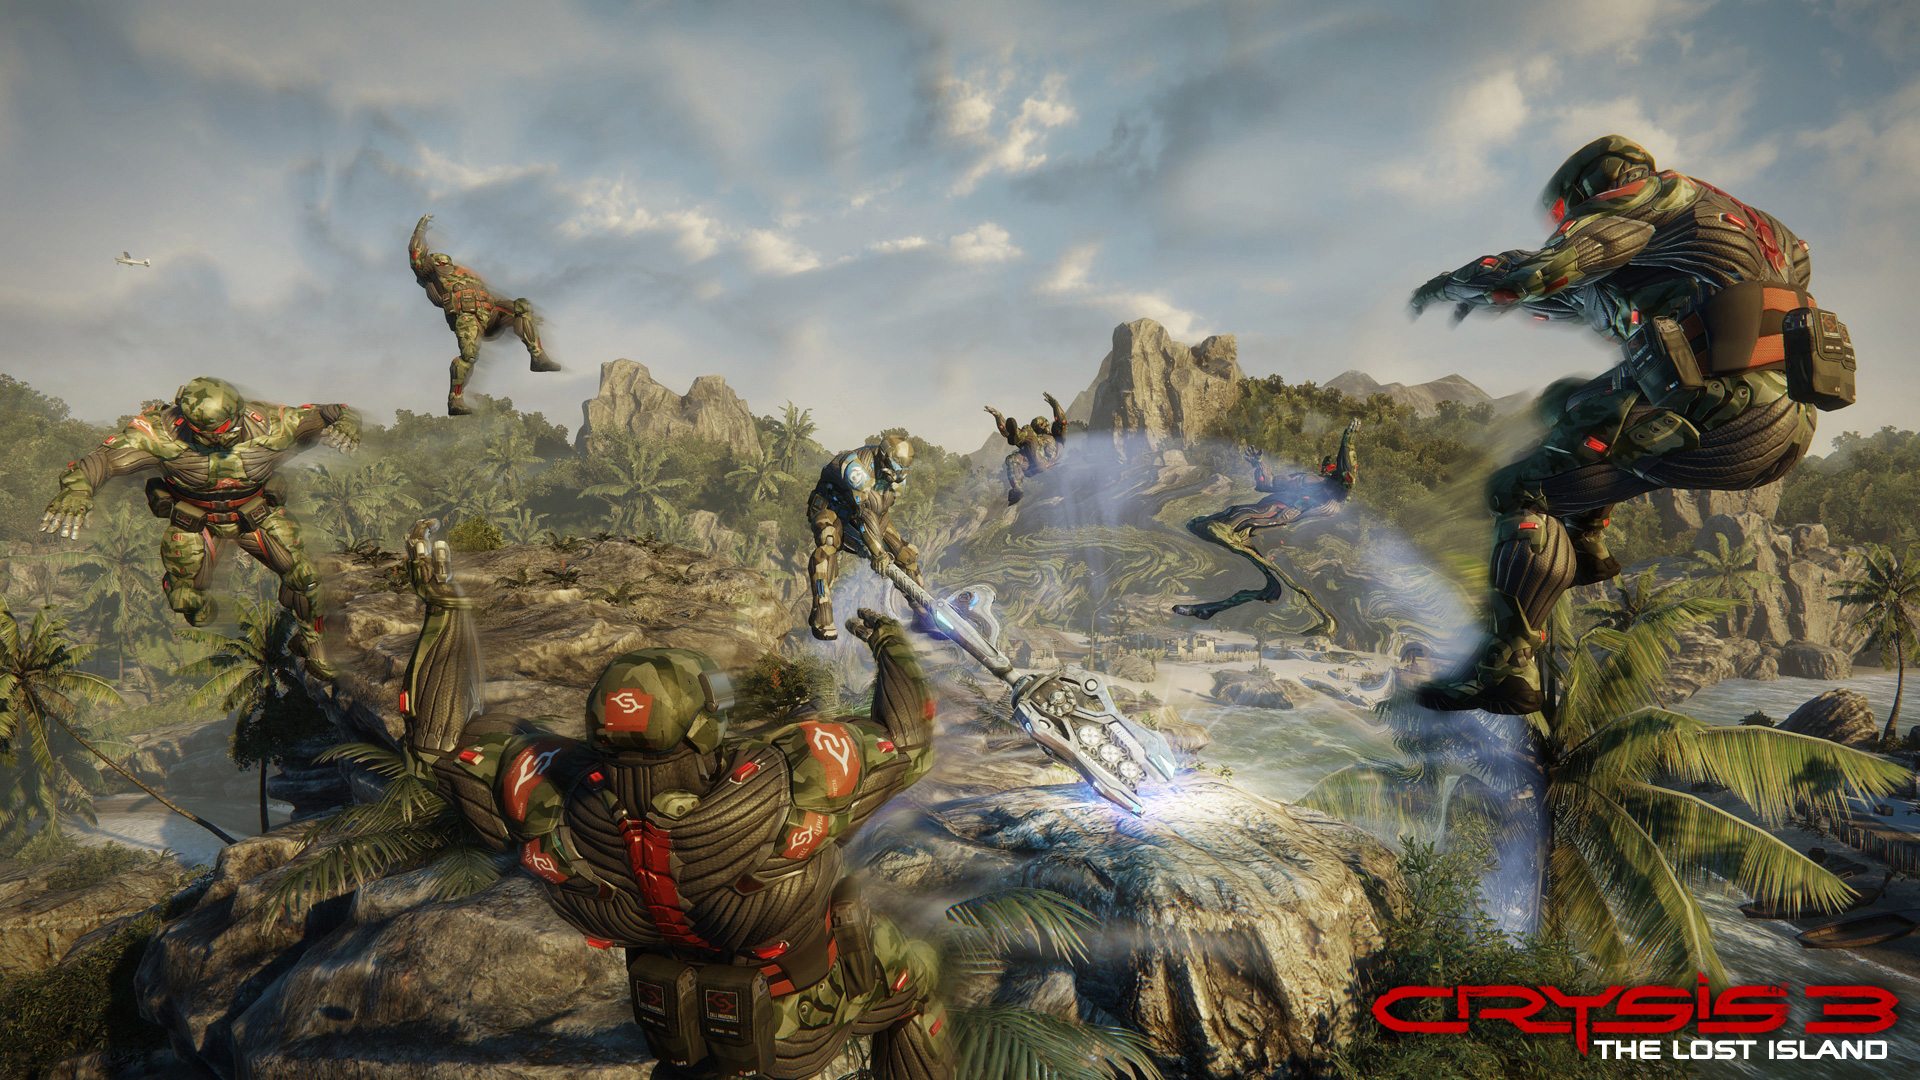 Арт к игре Crysis 3: The Lost Island